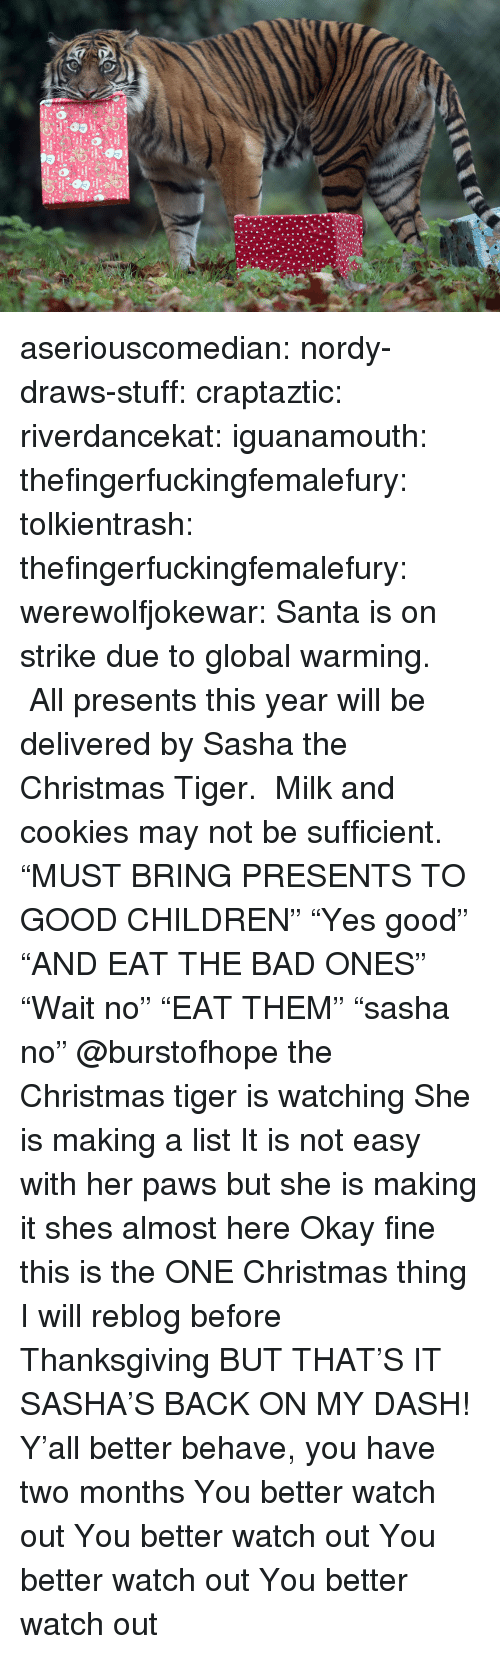 "Bad, Children, and Christmas: aseriouscomedian:  nordy-draws-stuff:   craptaztic:  riverdancekat:  iguanamouth:  thefingerfuckingfemalefury:  tolkientrash:  thefingerfuckingfemalefury:  werewolfjokewar:  Santa is on strike due to global warming.  All presents this year will be delivered by Sasha the Christmas Tiger.  Milk and cookies may not be sufficient.  ""MUST BRING PRESENTS TO GOOD CHILDREN"" ""Yes good"" ""AND EAT THE BAD ONES""  ""Wait no"" ""EAT THEM"" ""sasha no""   @burstofhope the Christmas tiger is watching  She is making a list  It is not easy with her paws but she is making it   shes almost here   Okay fine this is the ONE Christmas thing I will reblog before Thanksgiving BUT THAT'S IT  SASHA'S BACK ON MY DASH!  Y'all better behave, you have two months   You better watch out You better watch out You better watch out You better watch out"